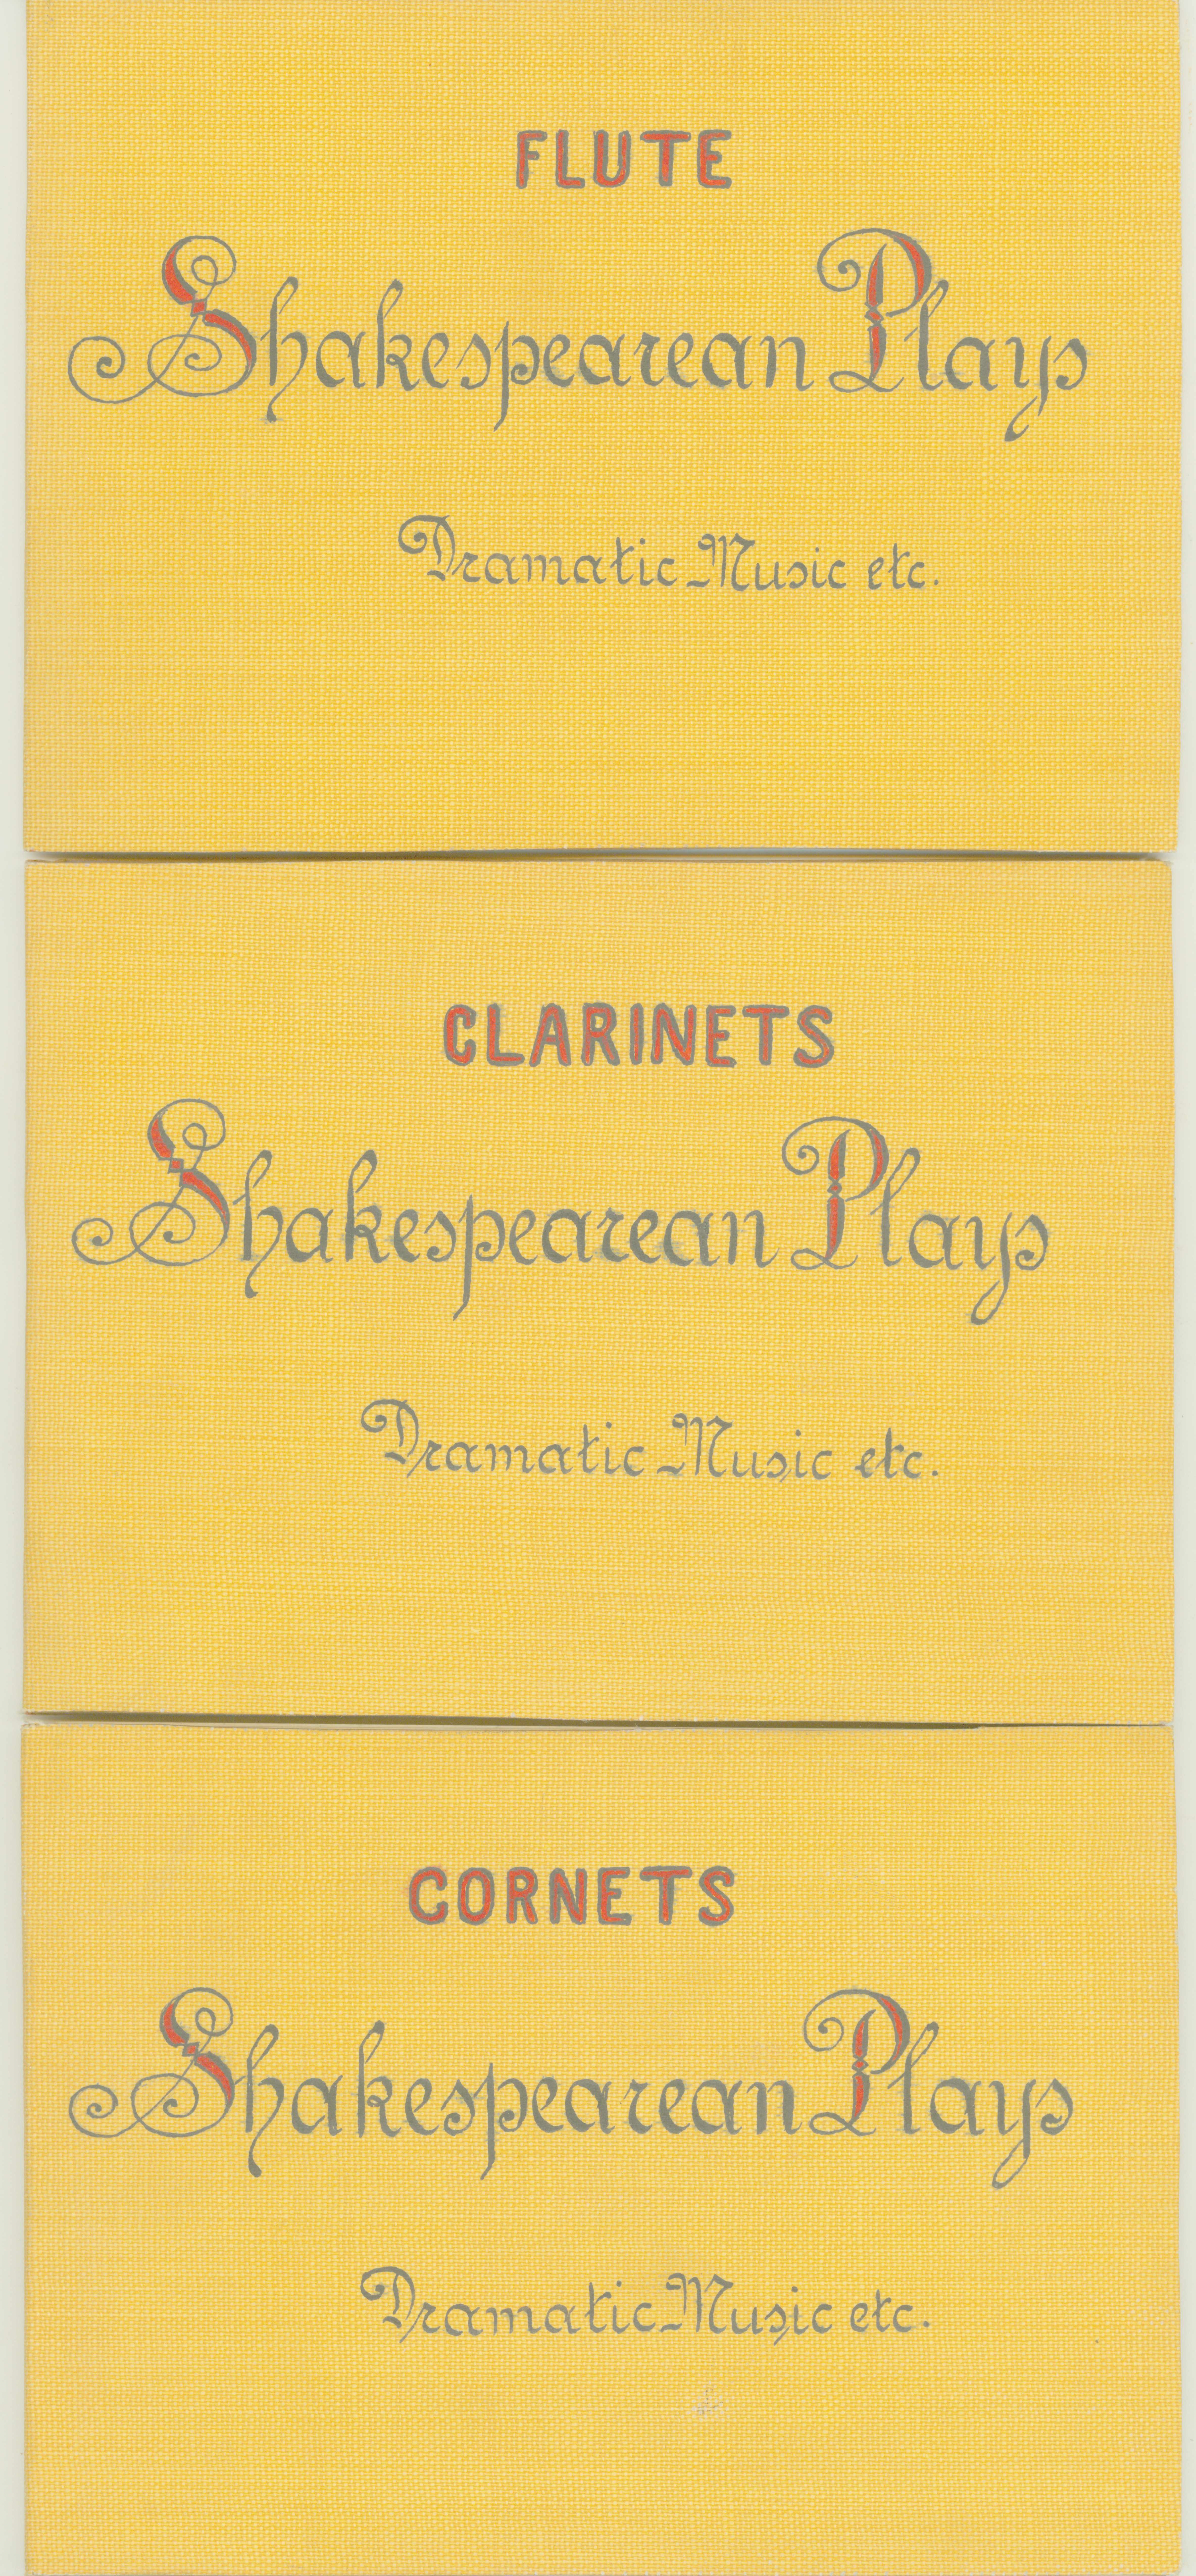 Shakespeare - Incidental Music For Plays - Shakespearean Plays. Dramatic Music Etc. Flute... - (7001)